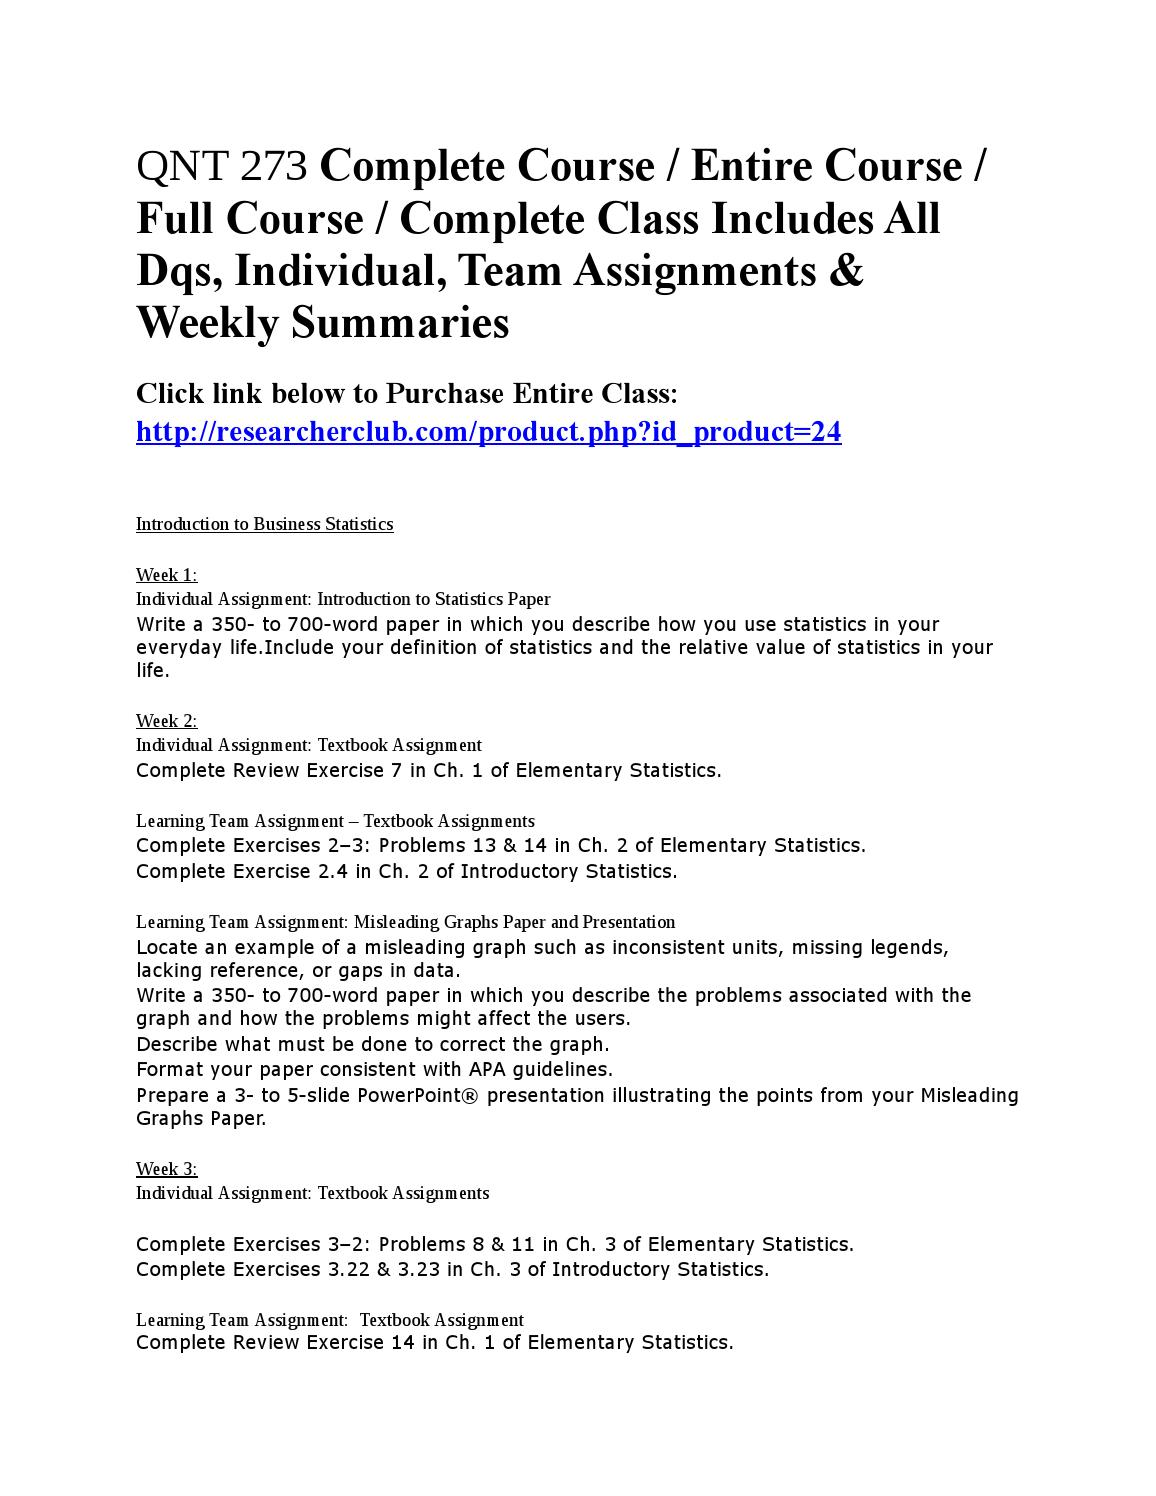 Qnt 273 complete course by katiecourin - issuu